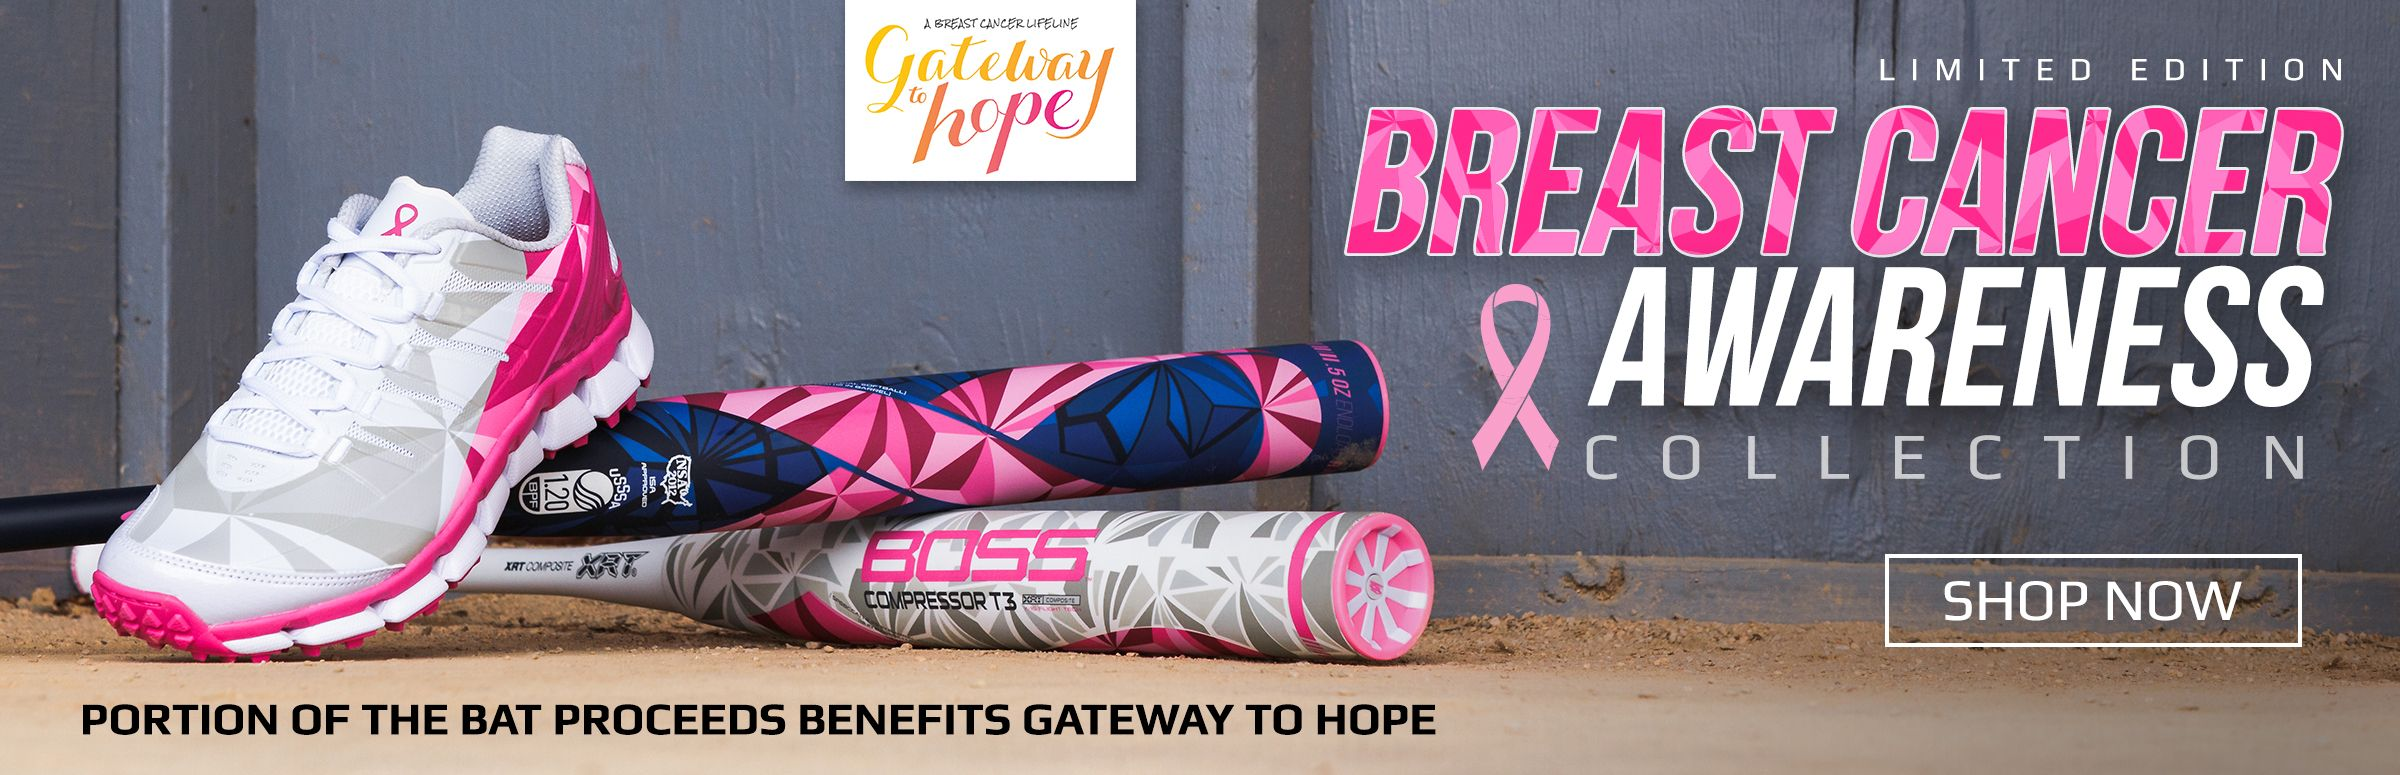 Boombah Special Edition BCA BOSS Slowpitch Bats and Turfs